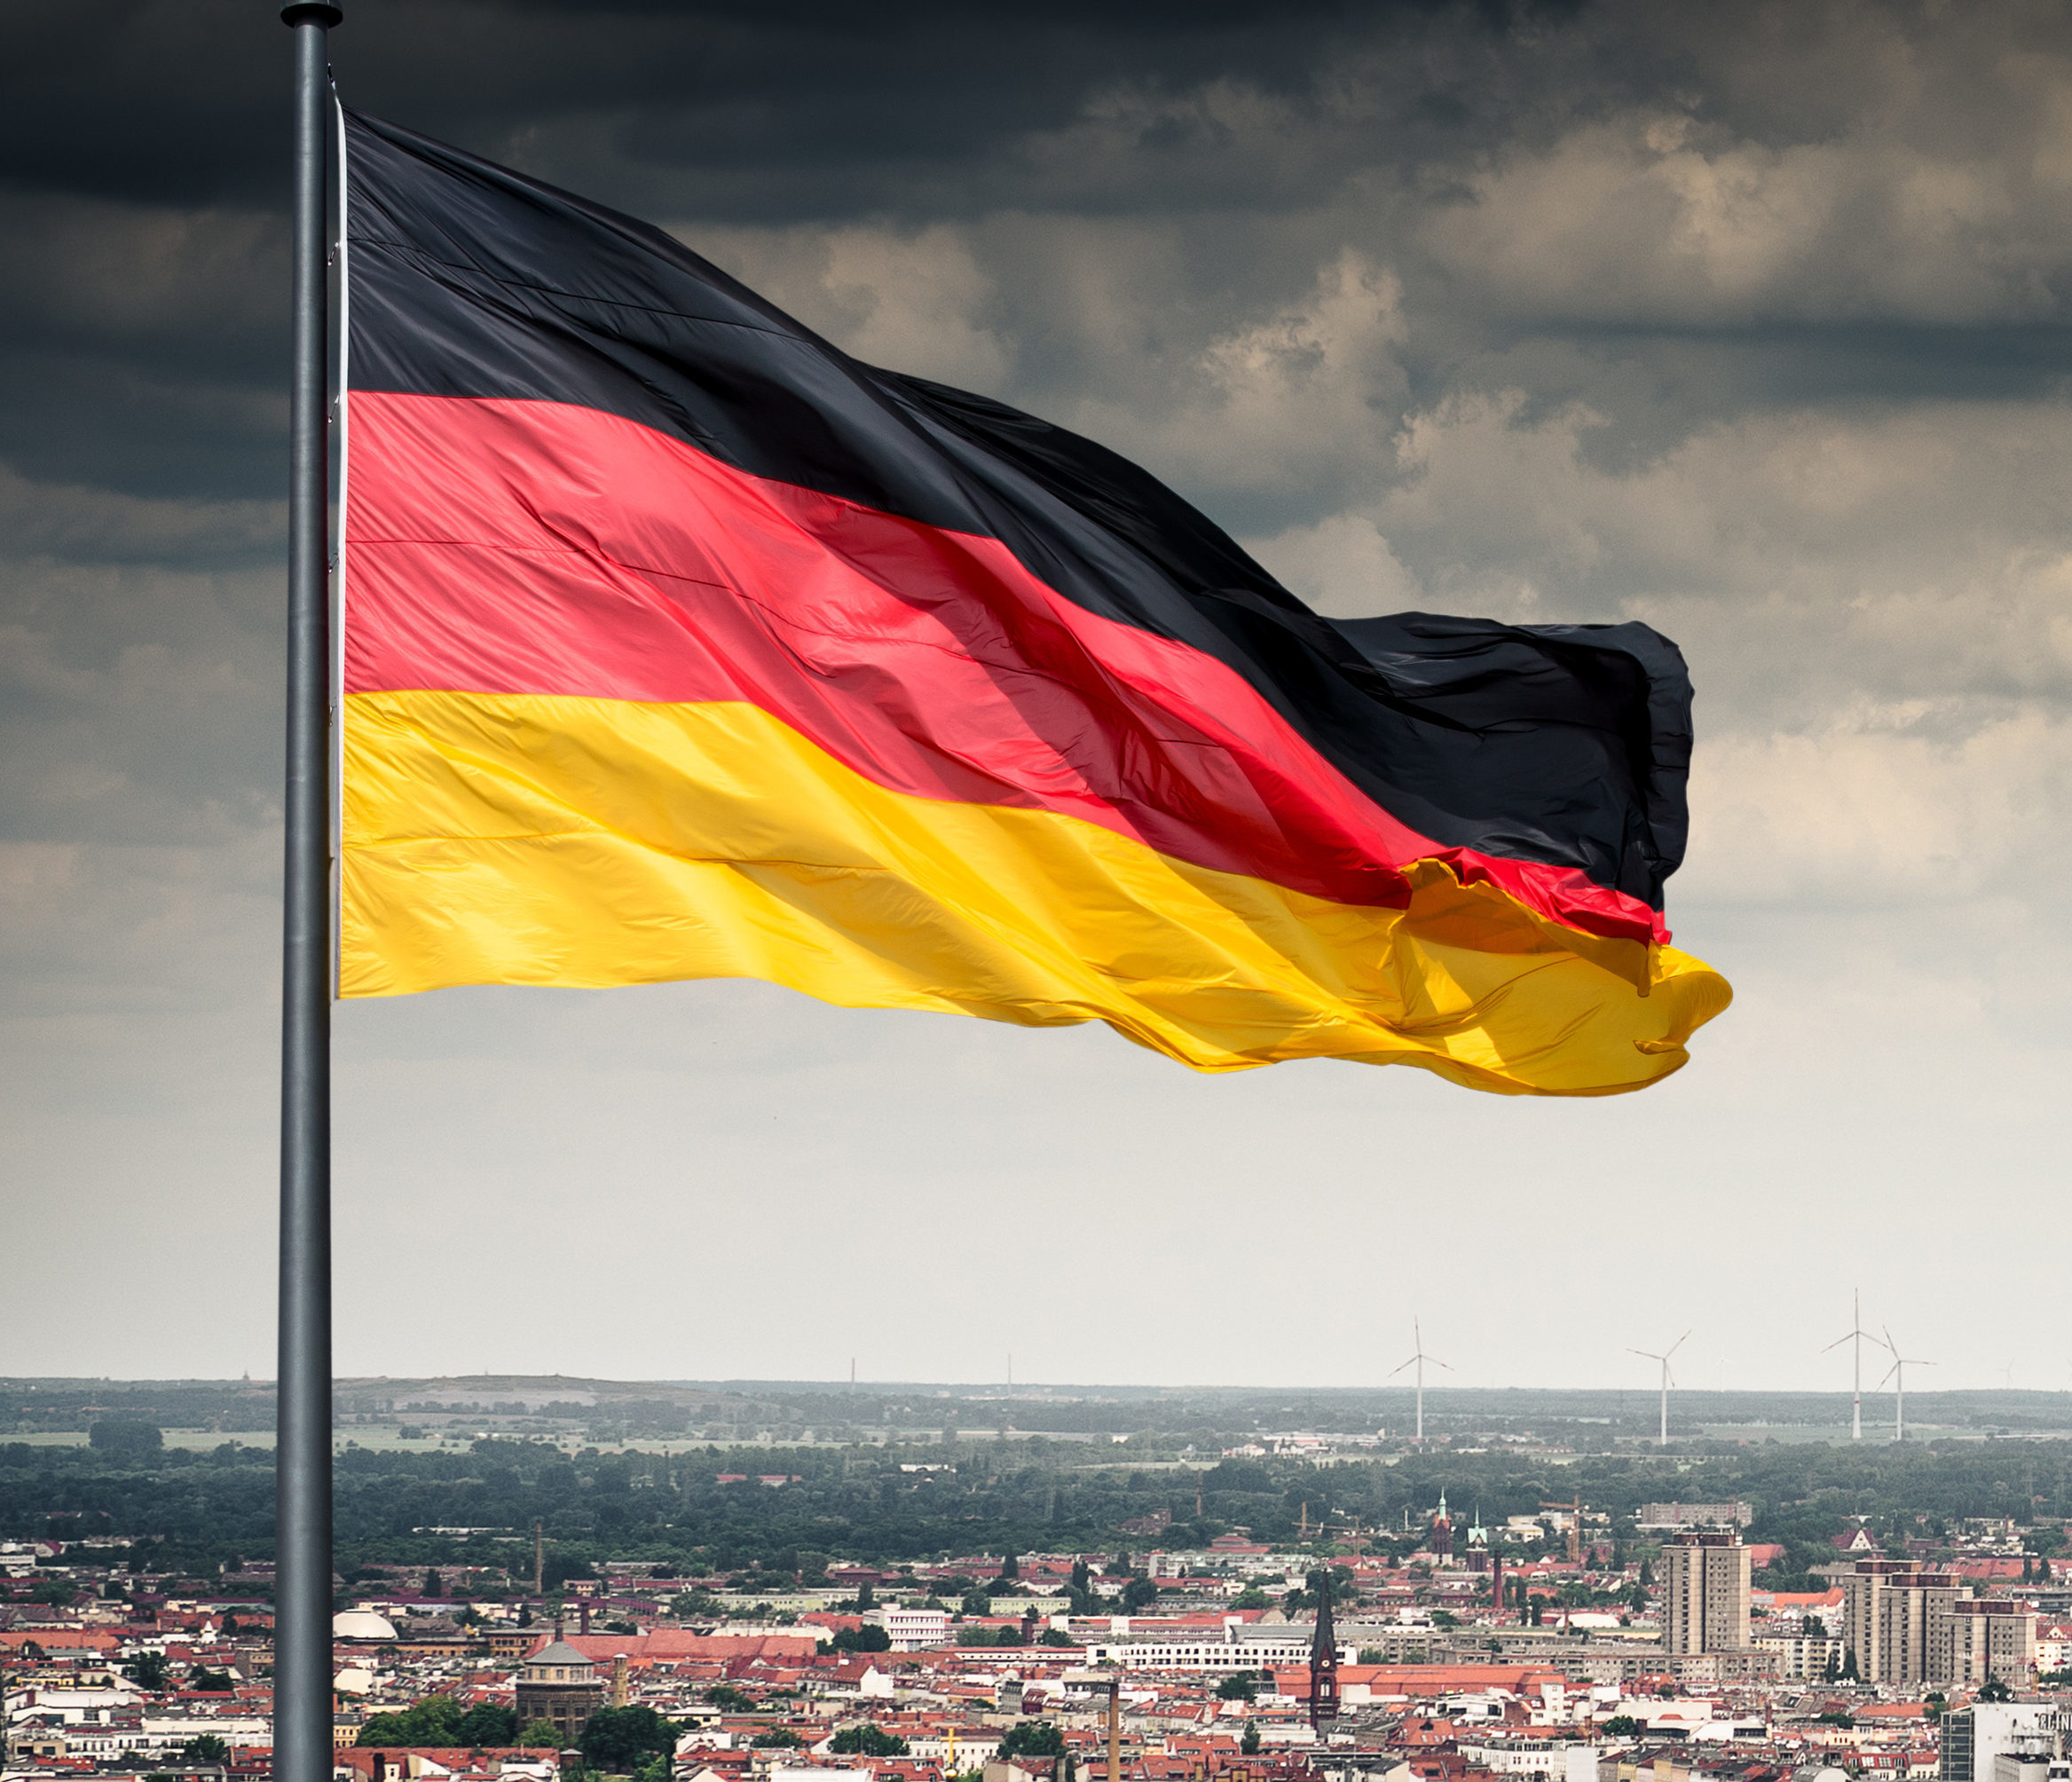 Performance fee disclosure in Germany: BaFin confirms that the performance fee disclosure requirements are applicable to German UCITS only